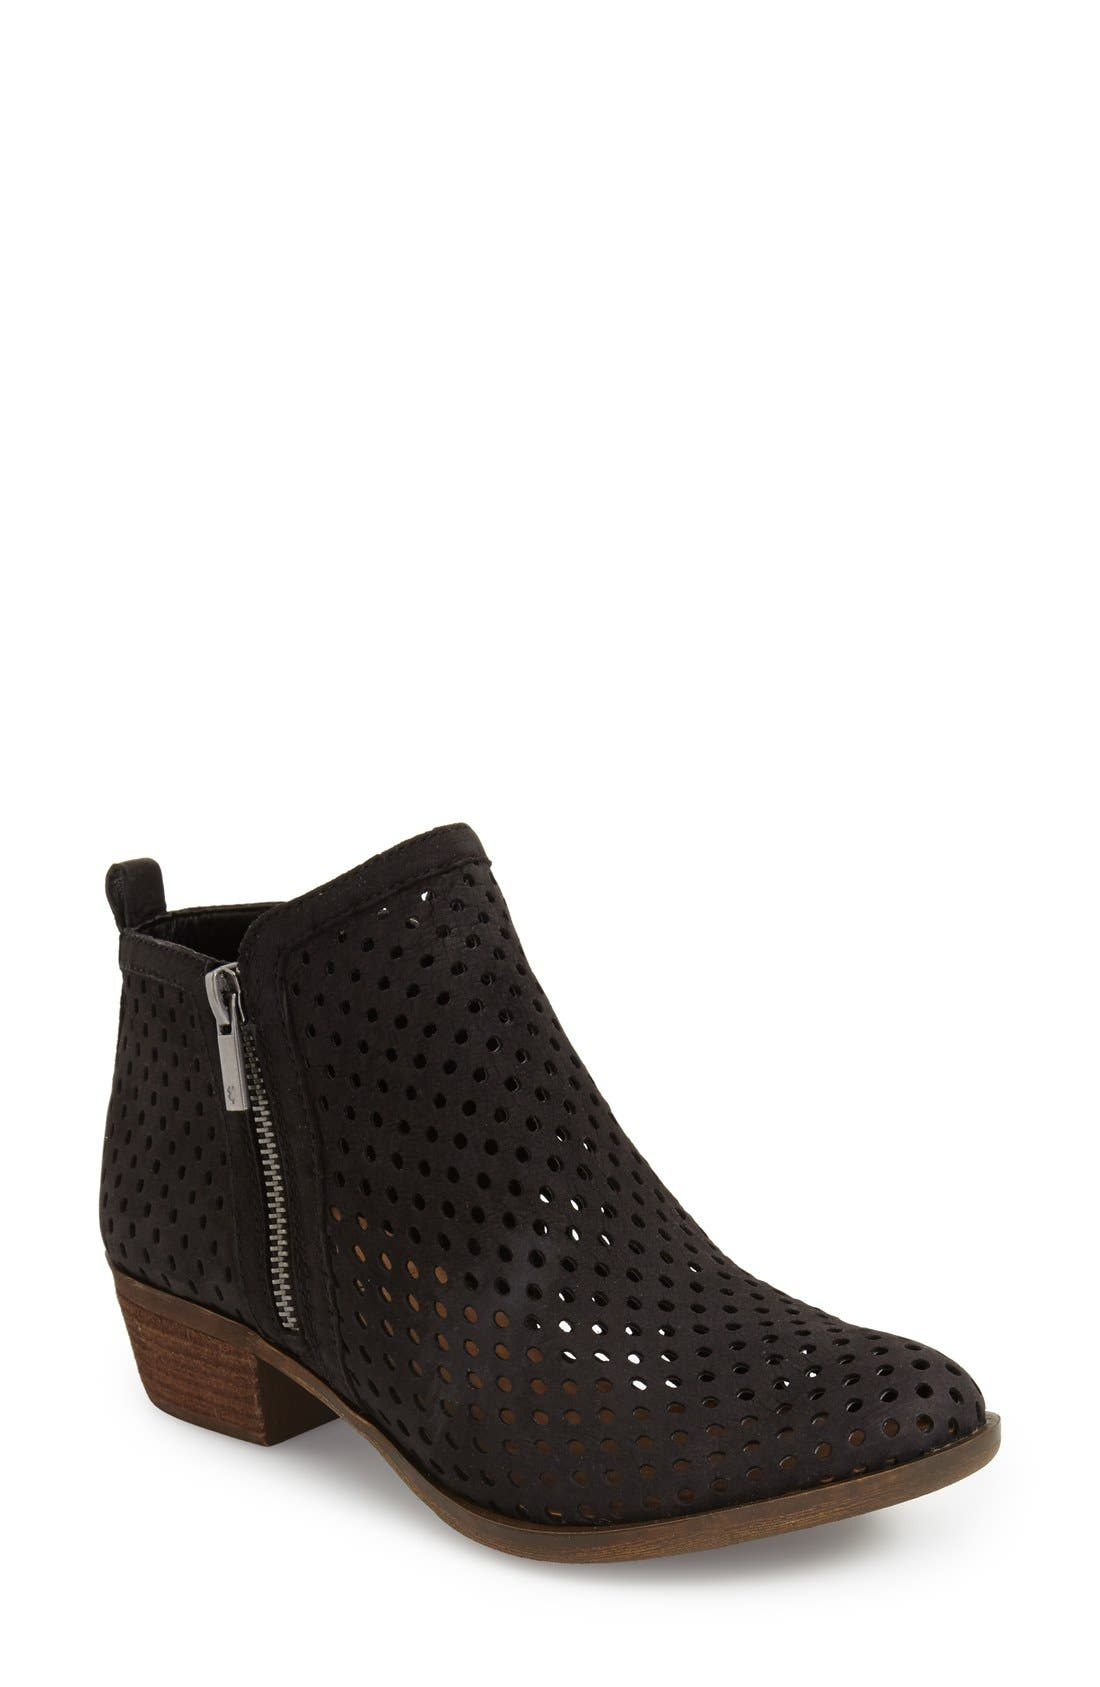 Main Image - Lucky Brand 'Basel' Perforated Bootie (Women)